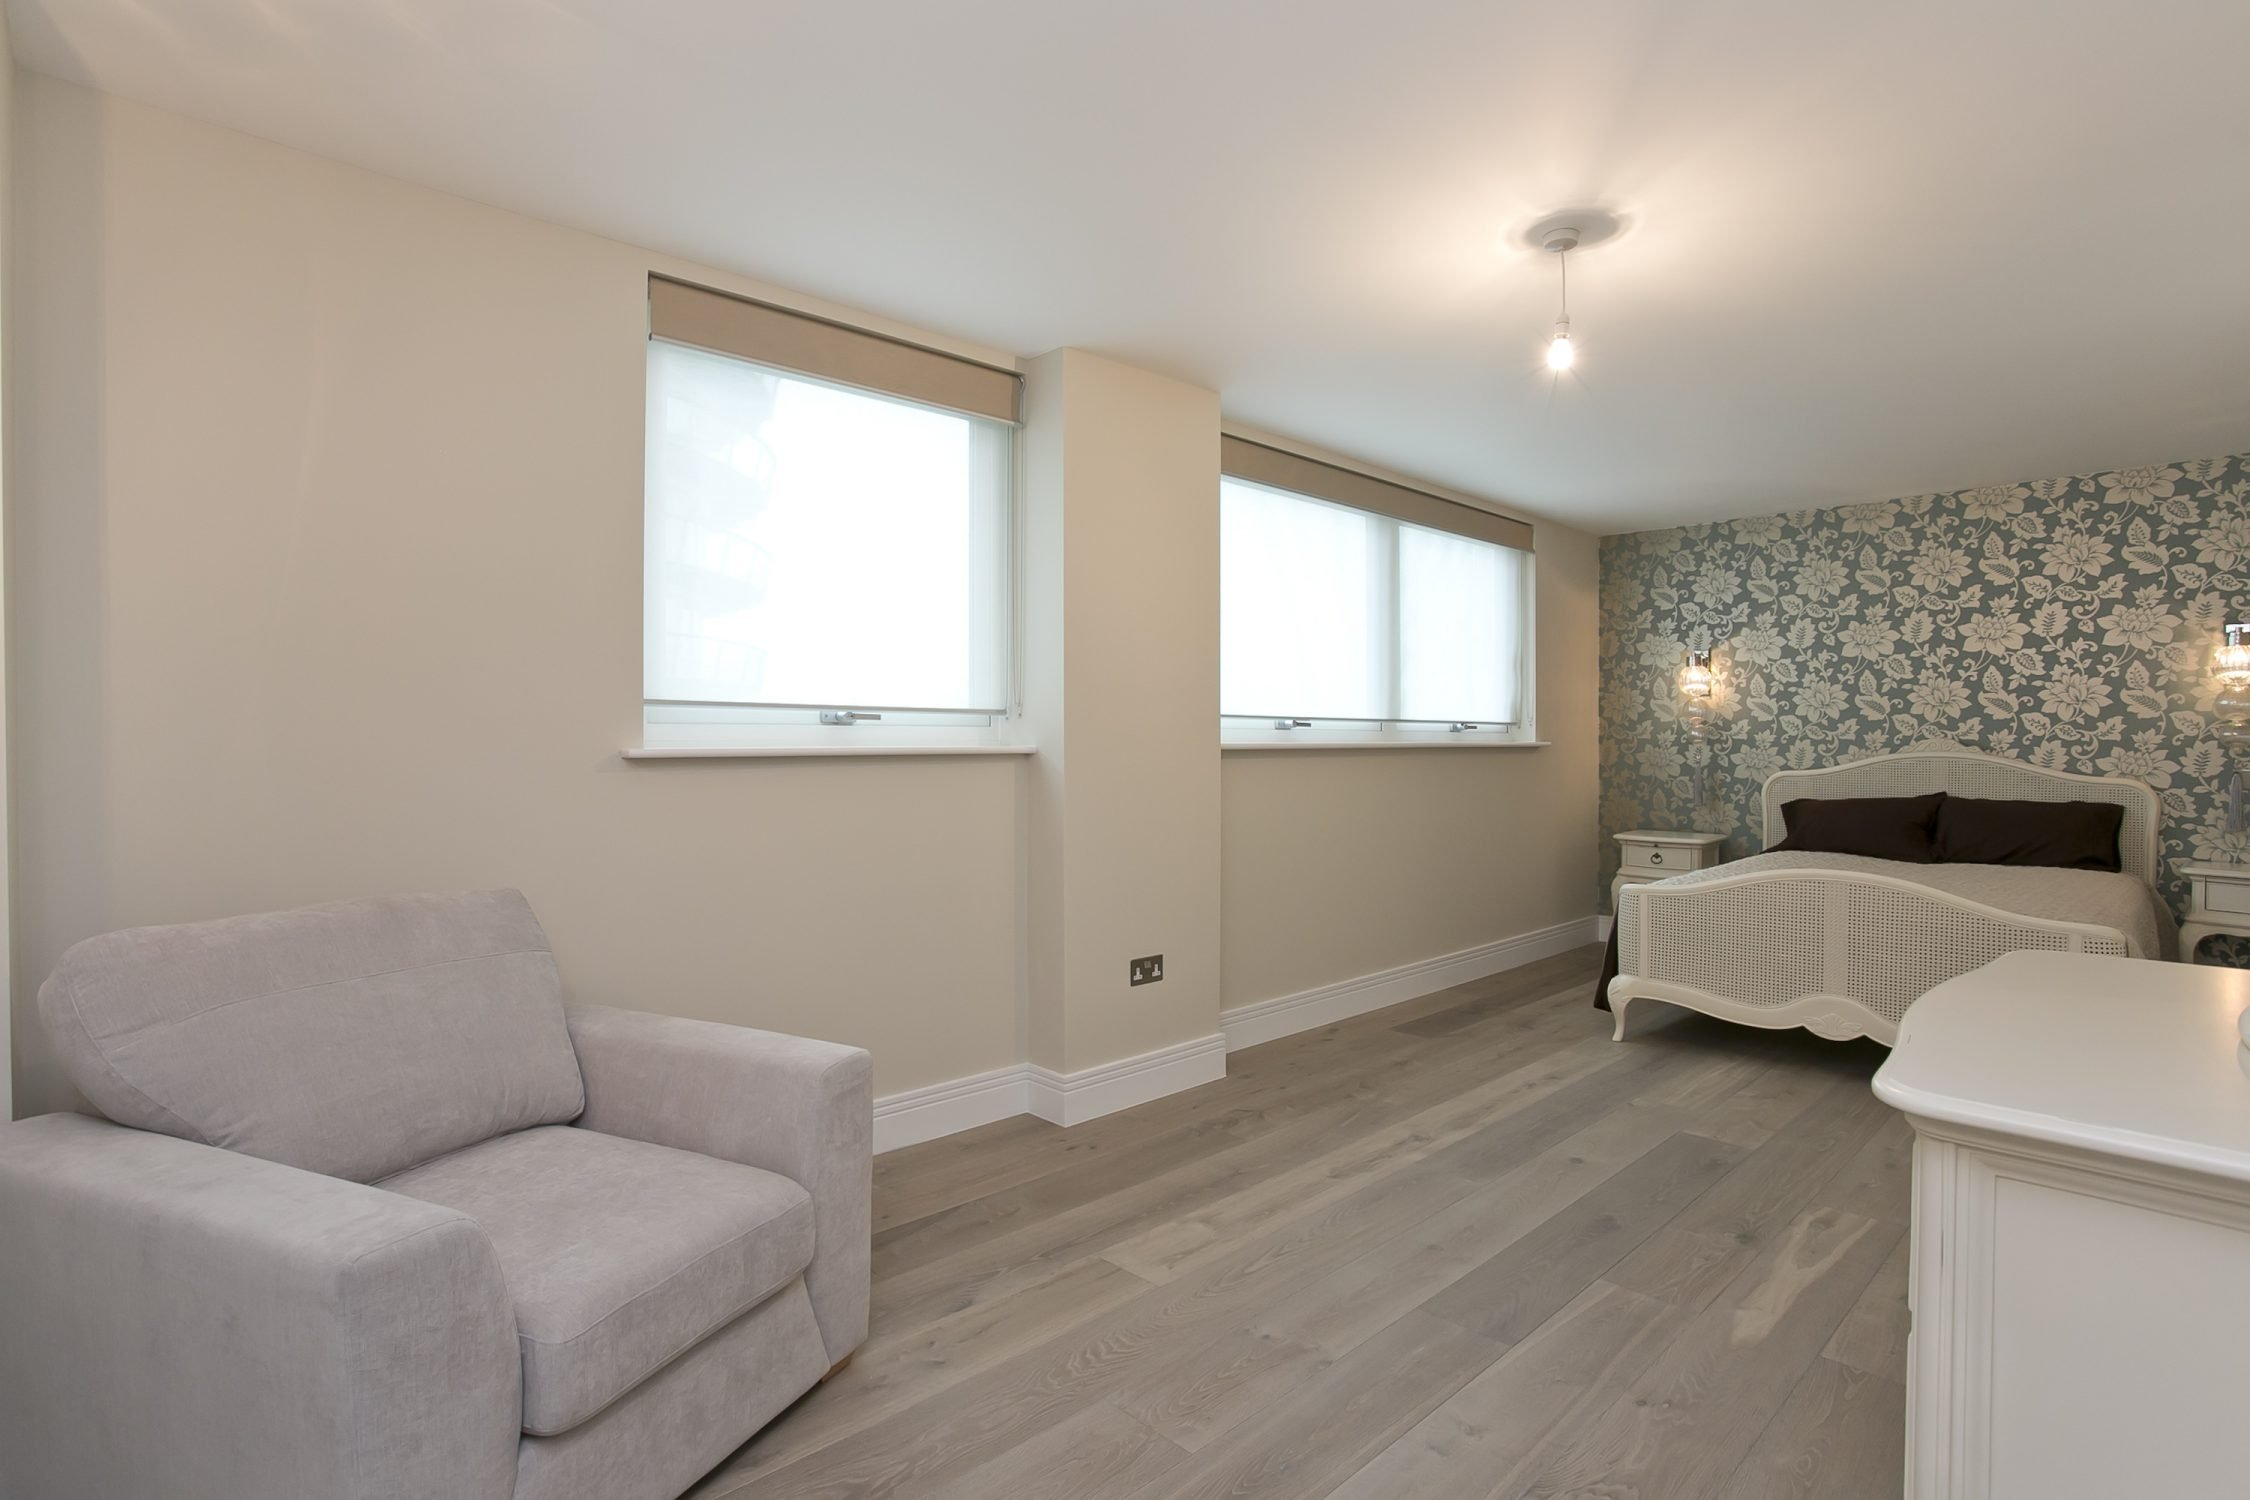 painting and decorating services for a spacious master bedroom with luxury floral wallpaper and Walls in Dulux Almond White, woodwork and ceiling in Brilliant White in Wapping, London